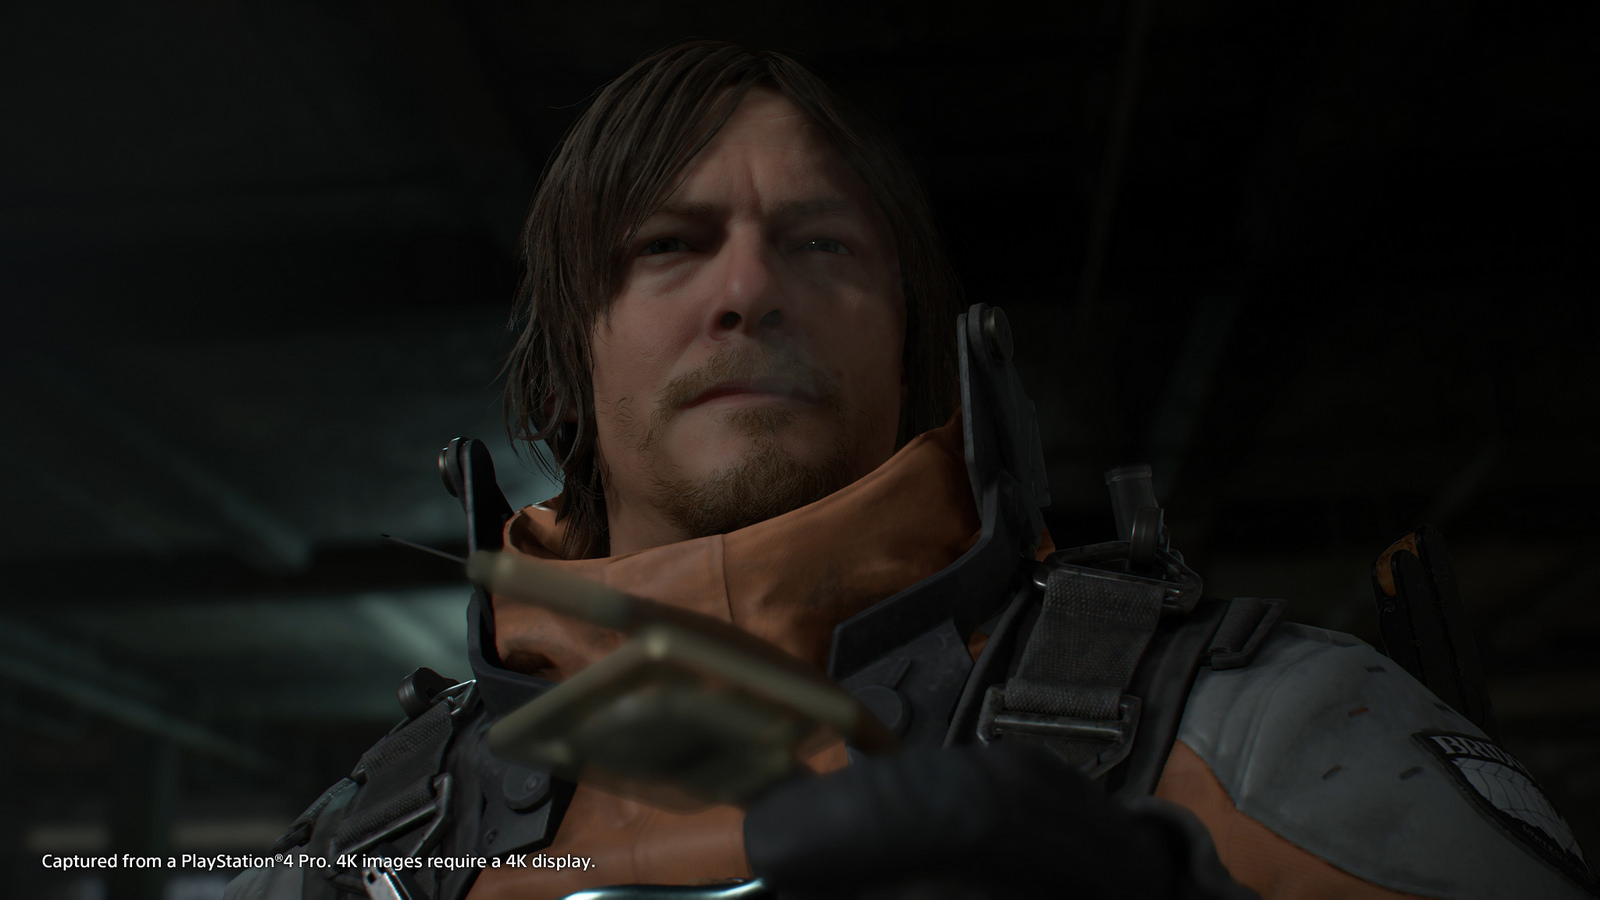 Primer gameplay trailer de Death Stranding, lo nuevo de Hideo Kojima